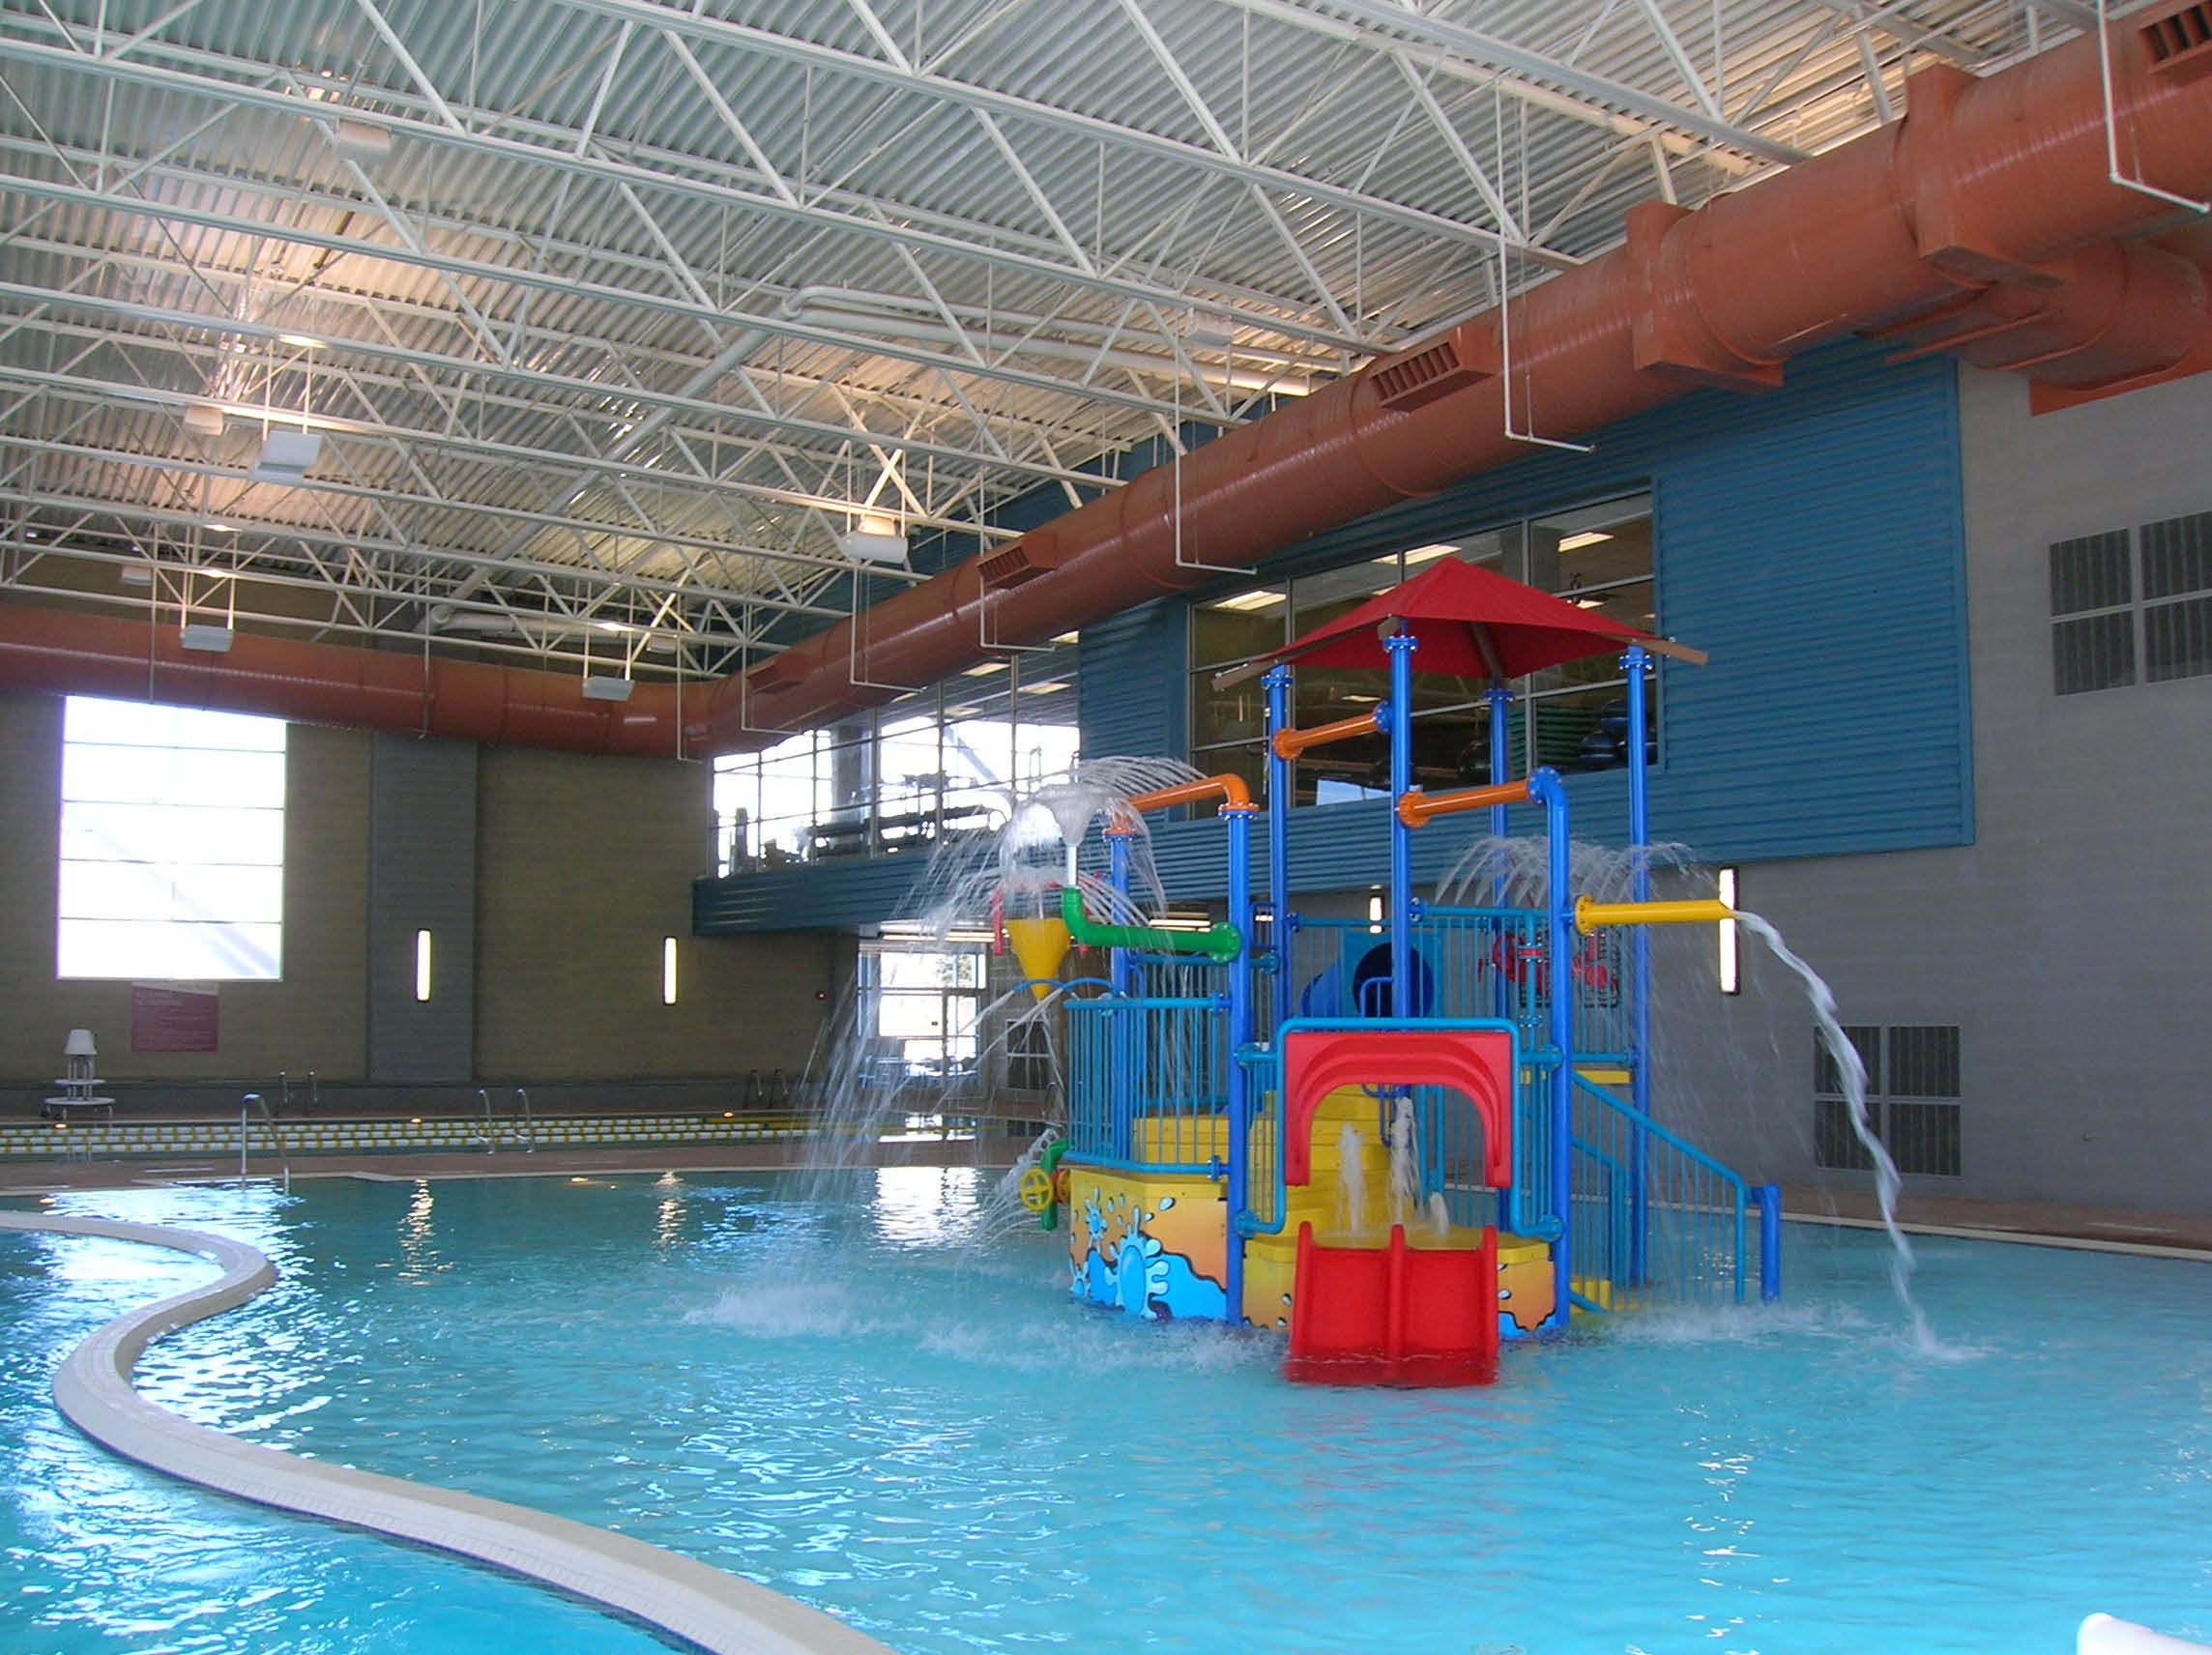 Swimming Pool at our Recreation Center serving Centerville, Bountiful, West Bountiful, Woods Cross or North Salt Lake, Utah.